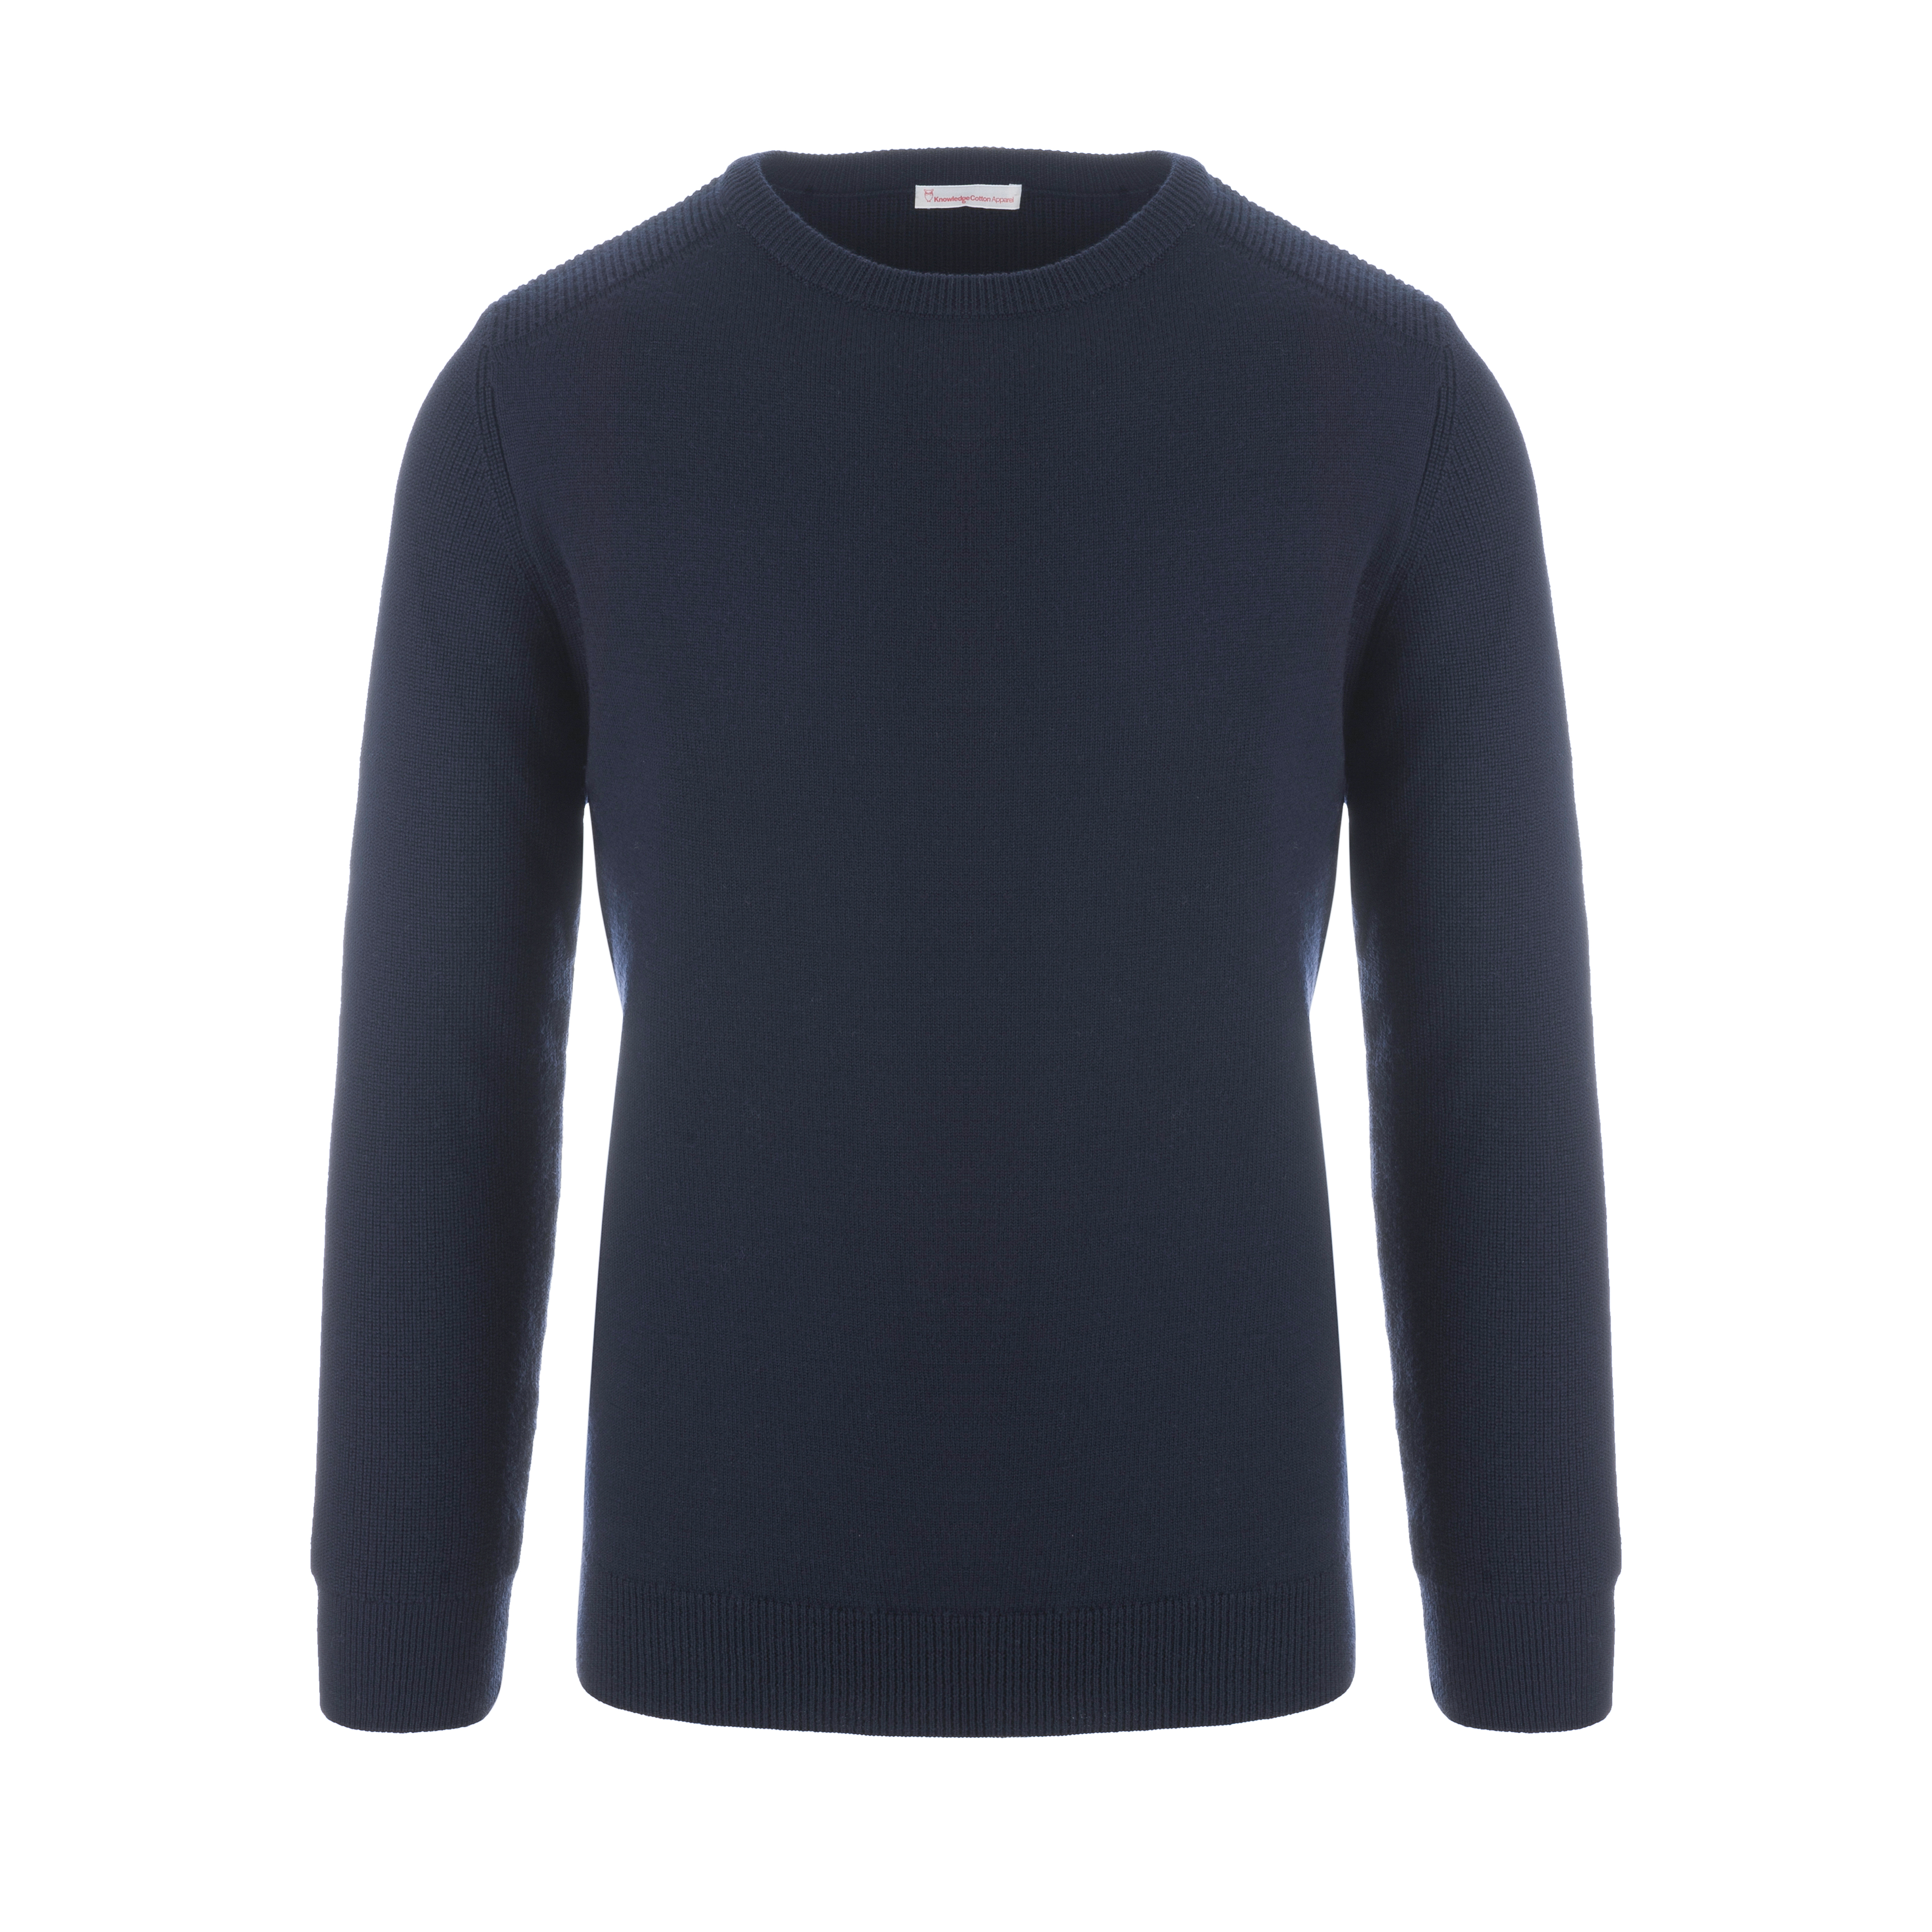 Two Pattern Combi Crew-Neck Pullover Total Eclipse